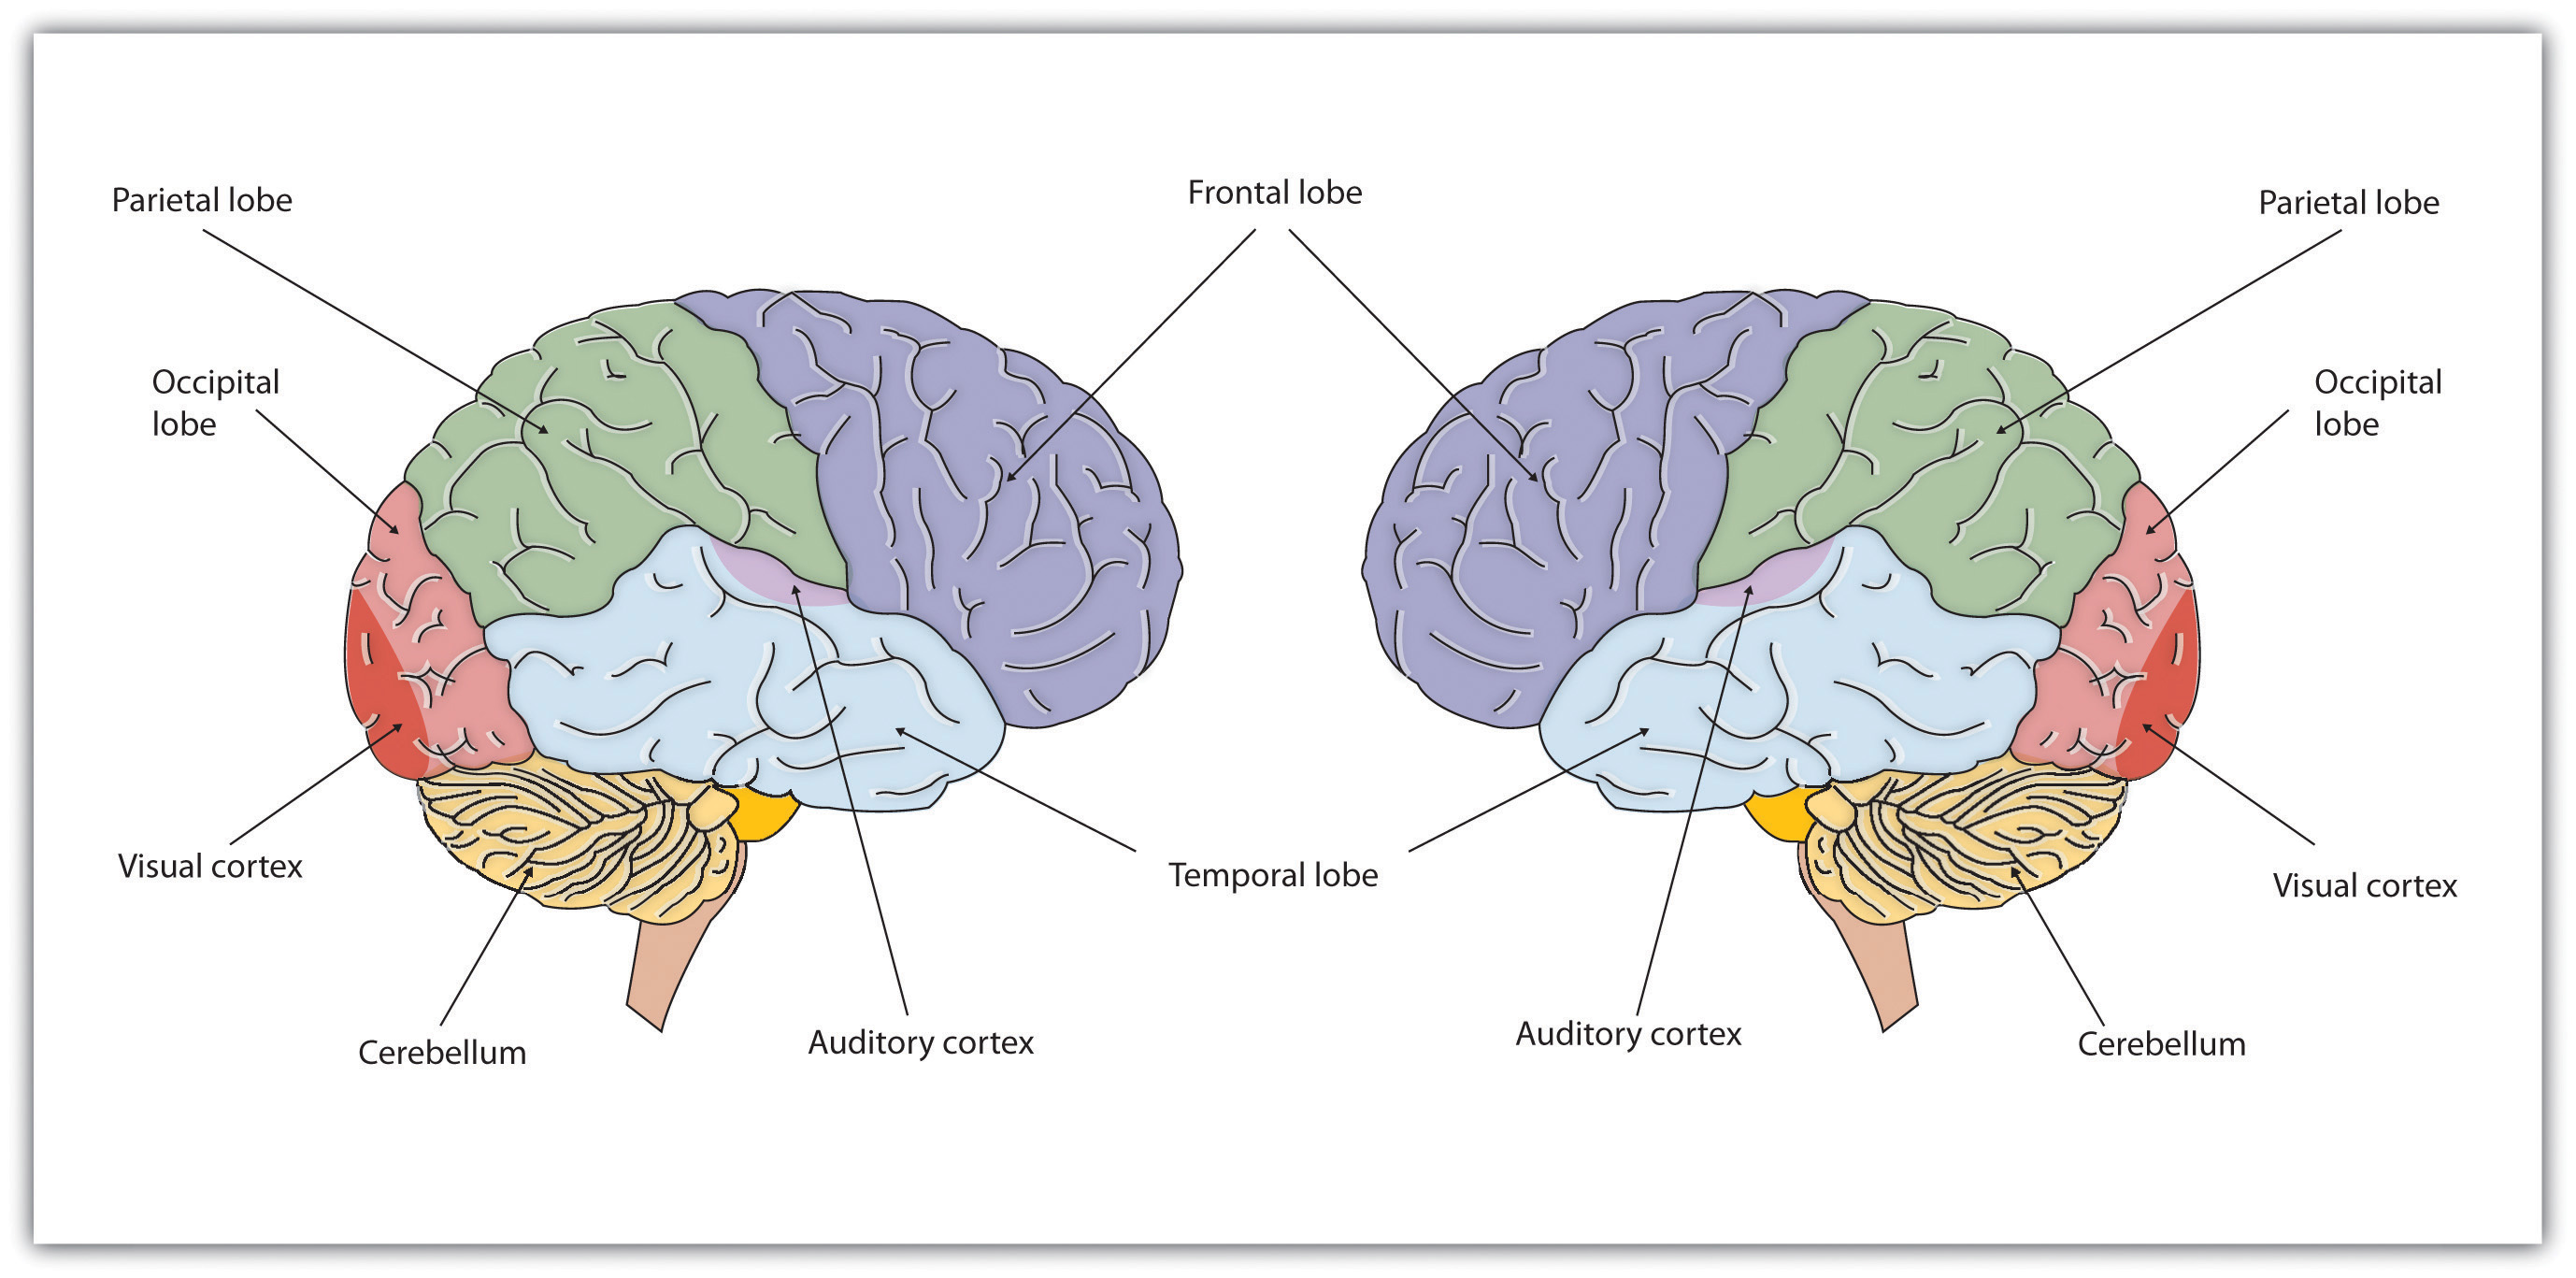 psychology parietal lobe Occipital lobe parietal lobe temporal lobe  this research could open a whole new realm of psychology  the occipital lobe song –to the tune of i can see.